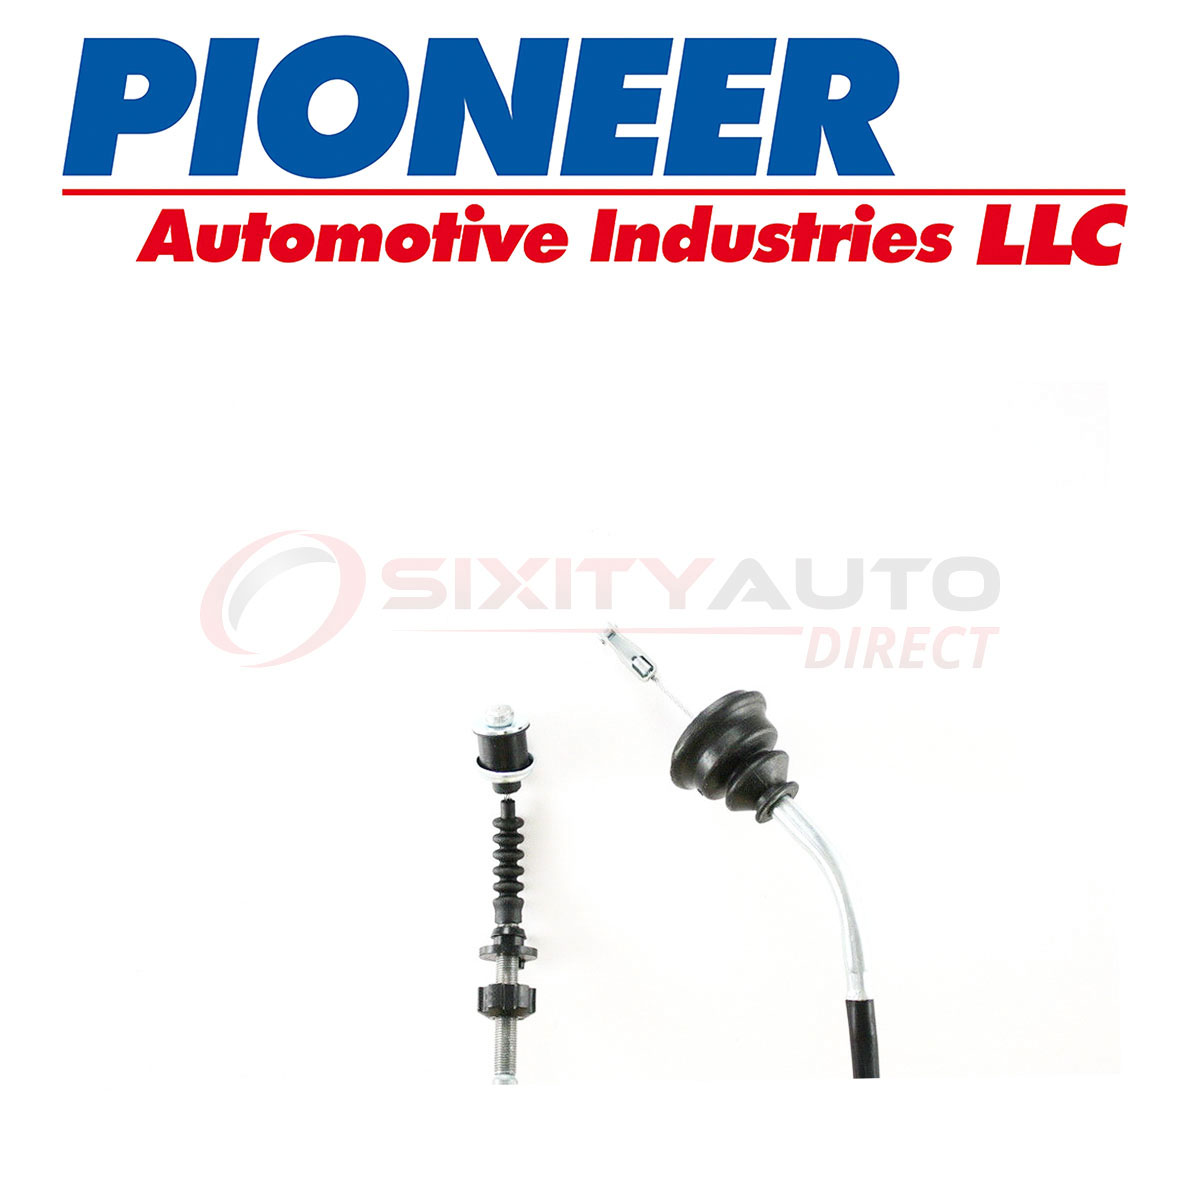 Pioneer Clutch Cable For 1990-1993 Acura Legend 2.7L 3.2L